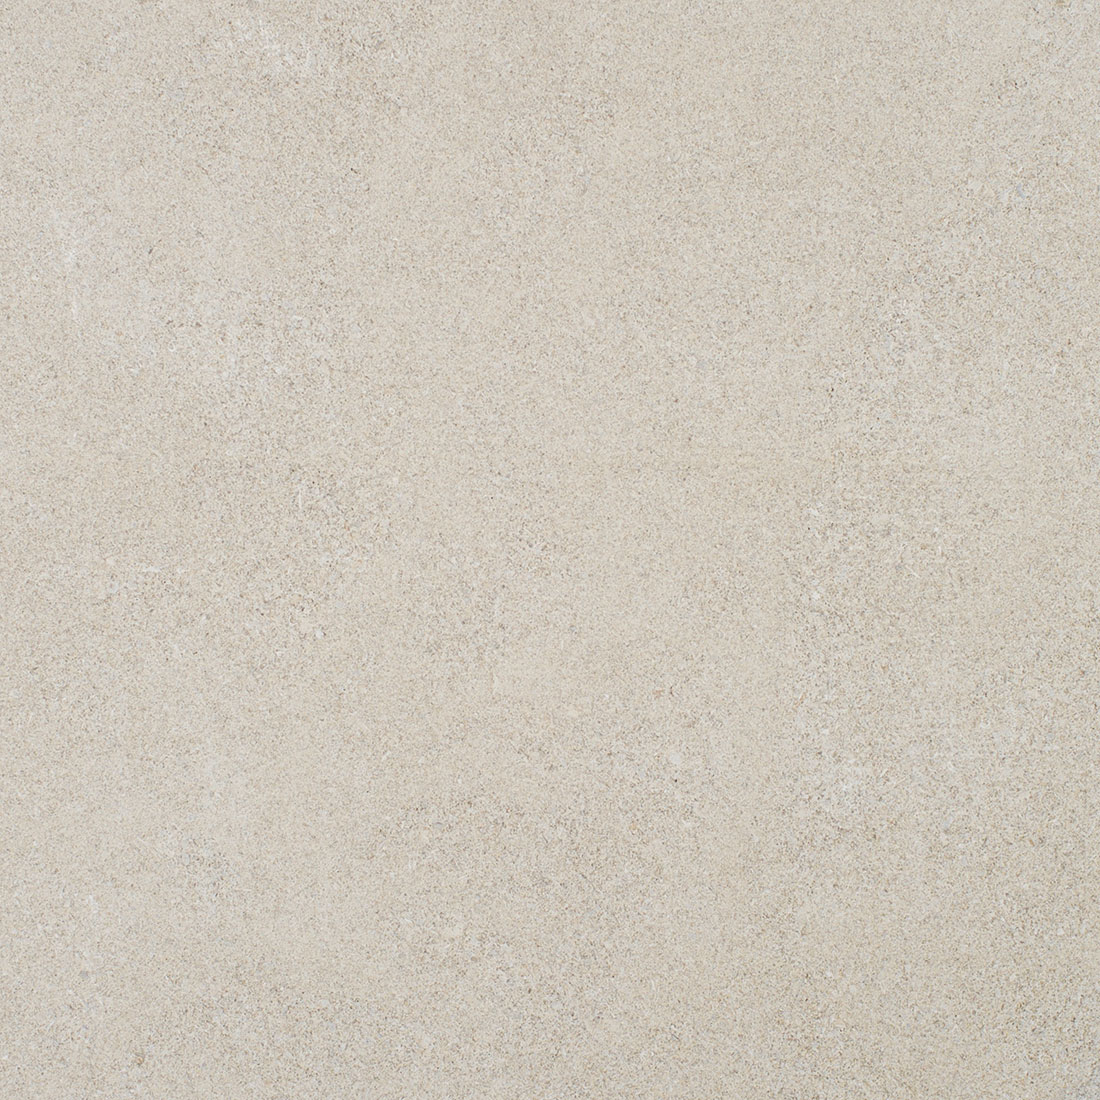 Indiana Limestone coping and banding standard buff swatch